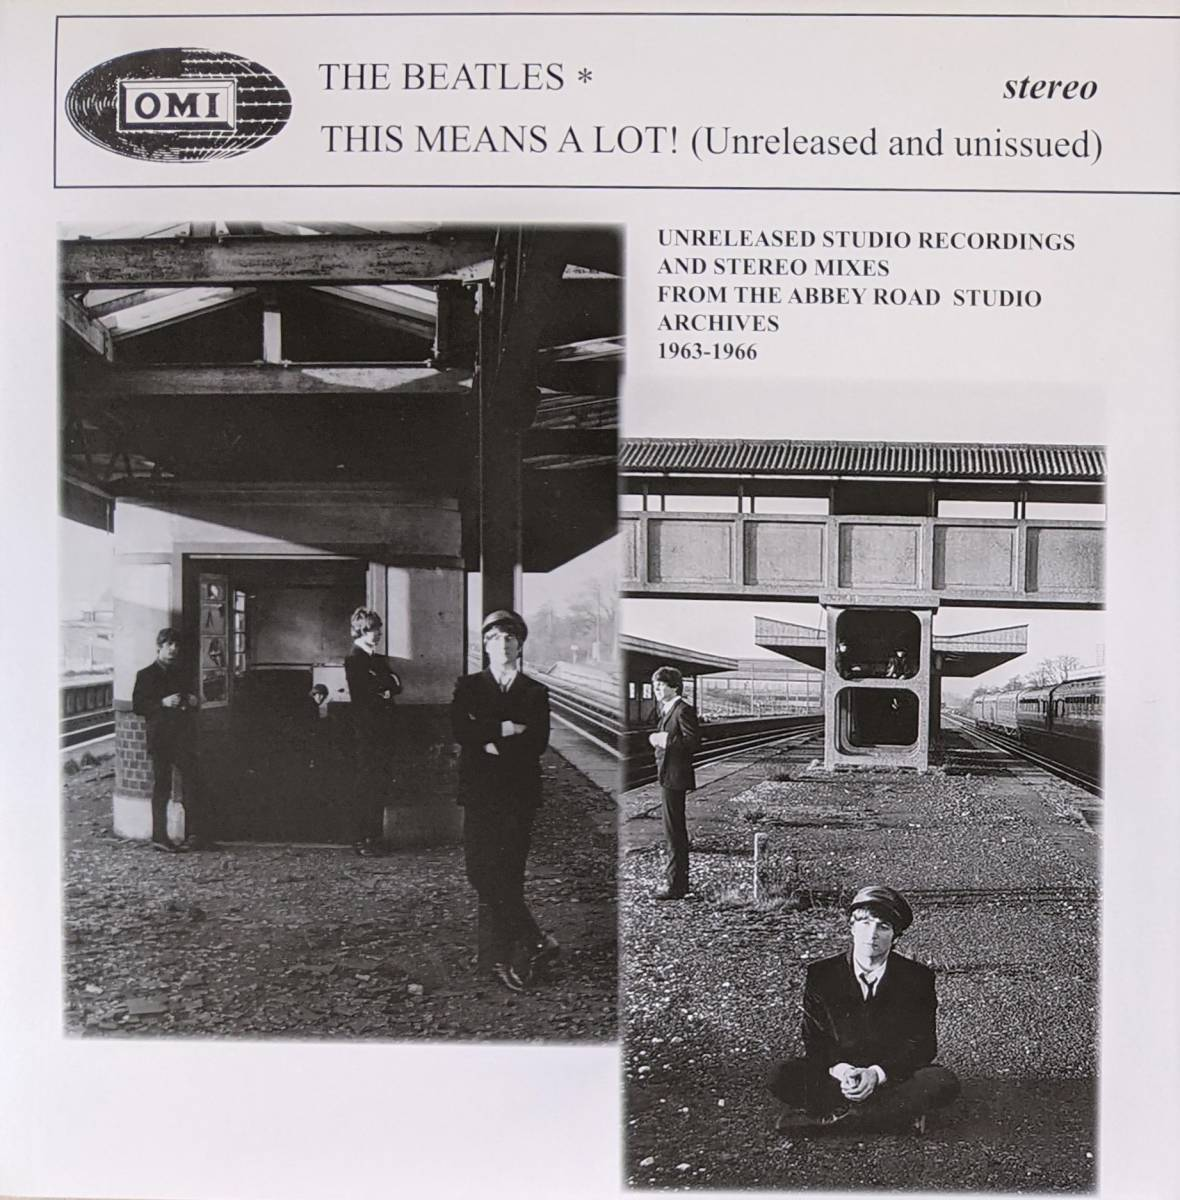 The Beatles ビートルズ - This Means A Lot! (Unreleased and unissued) 限定アナログ・レコード